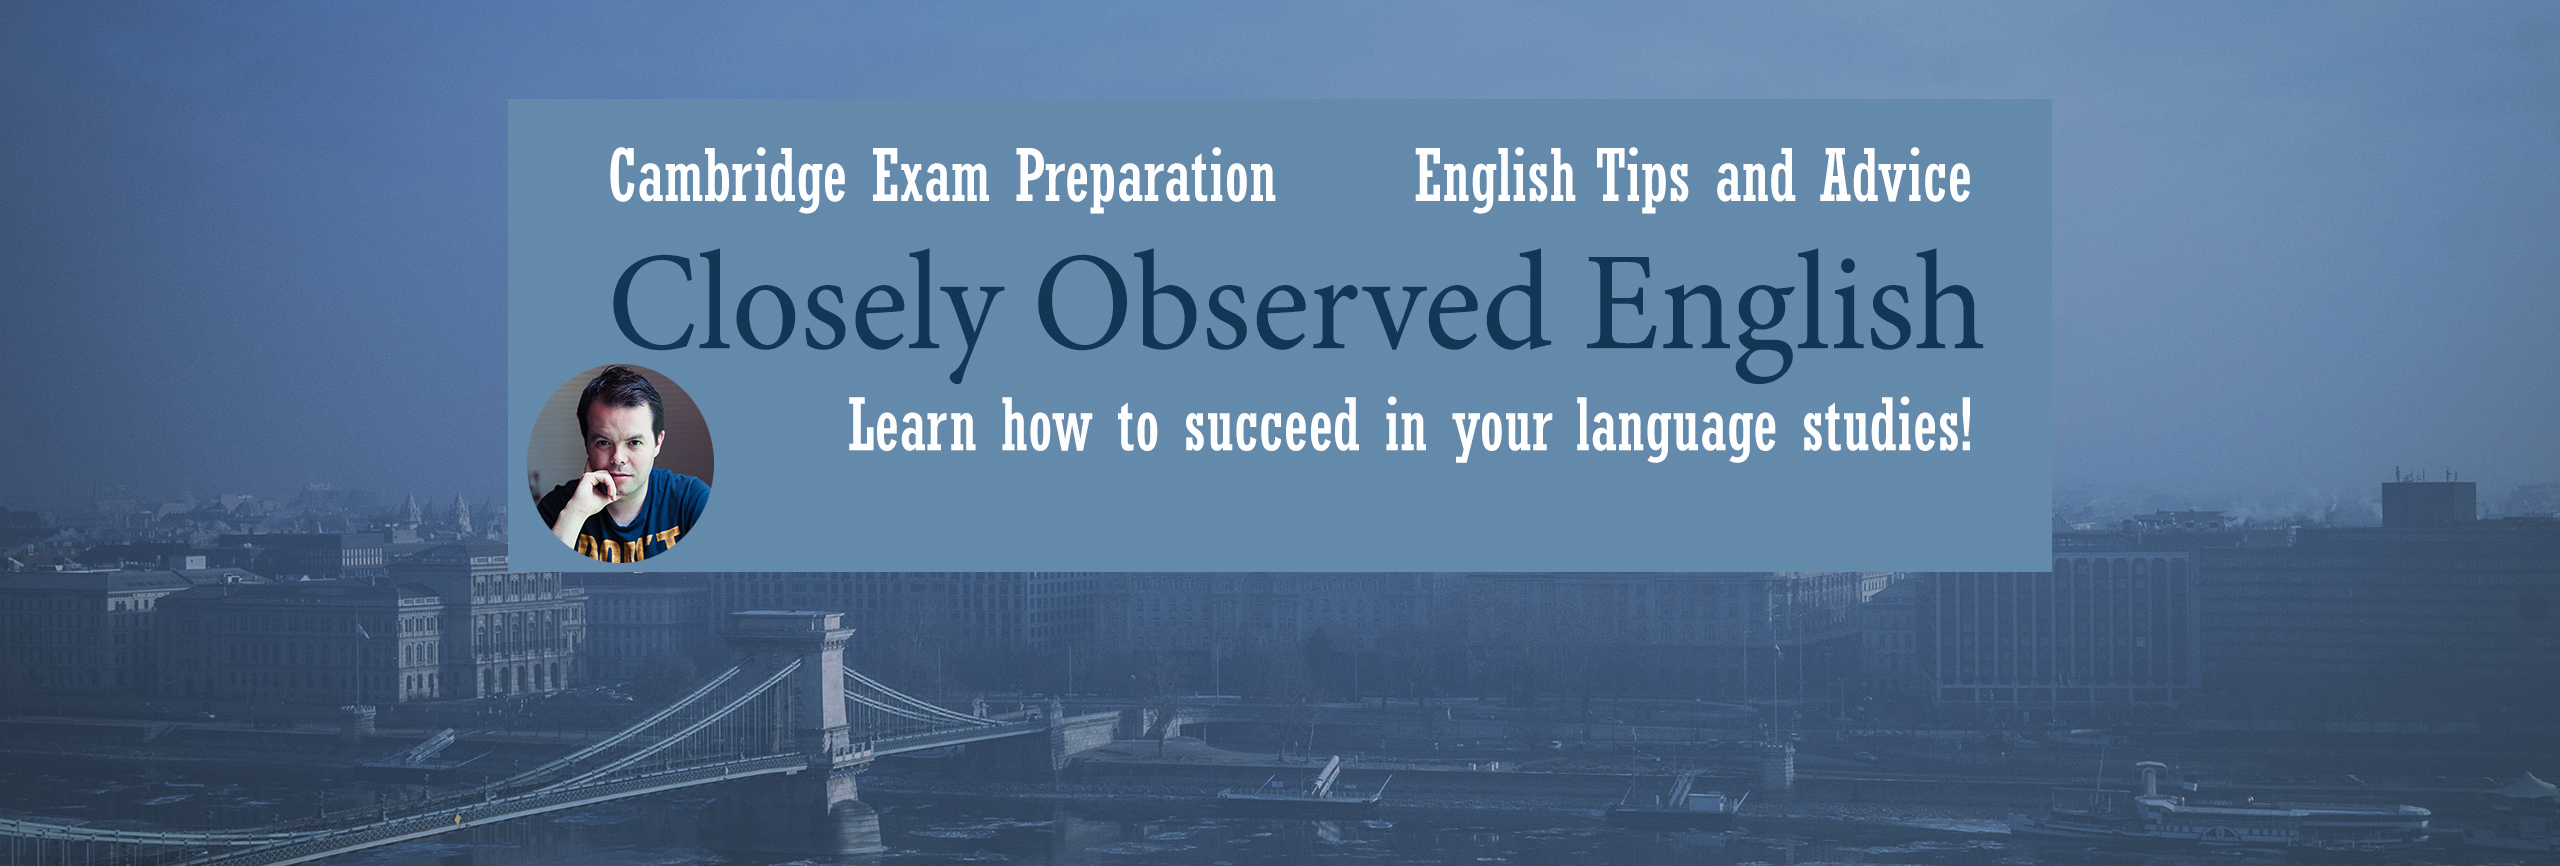 Closely Observed English